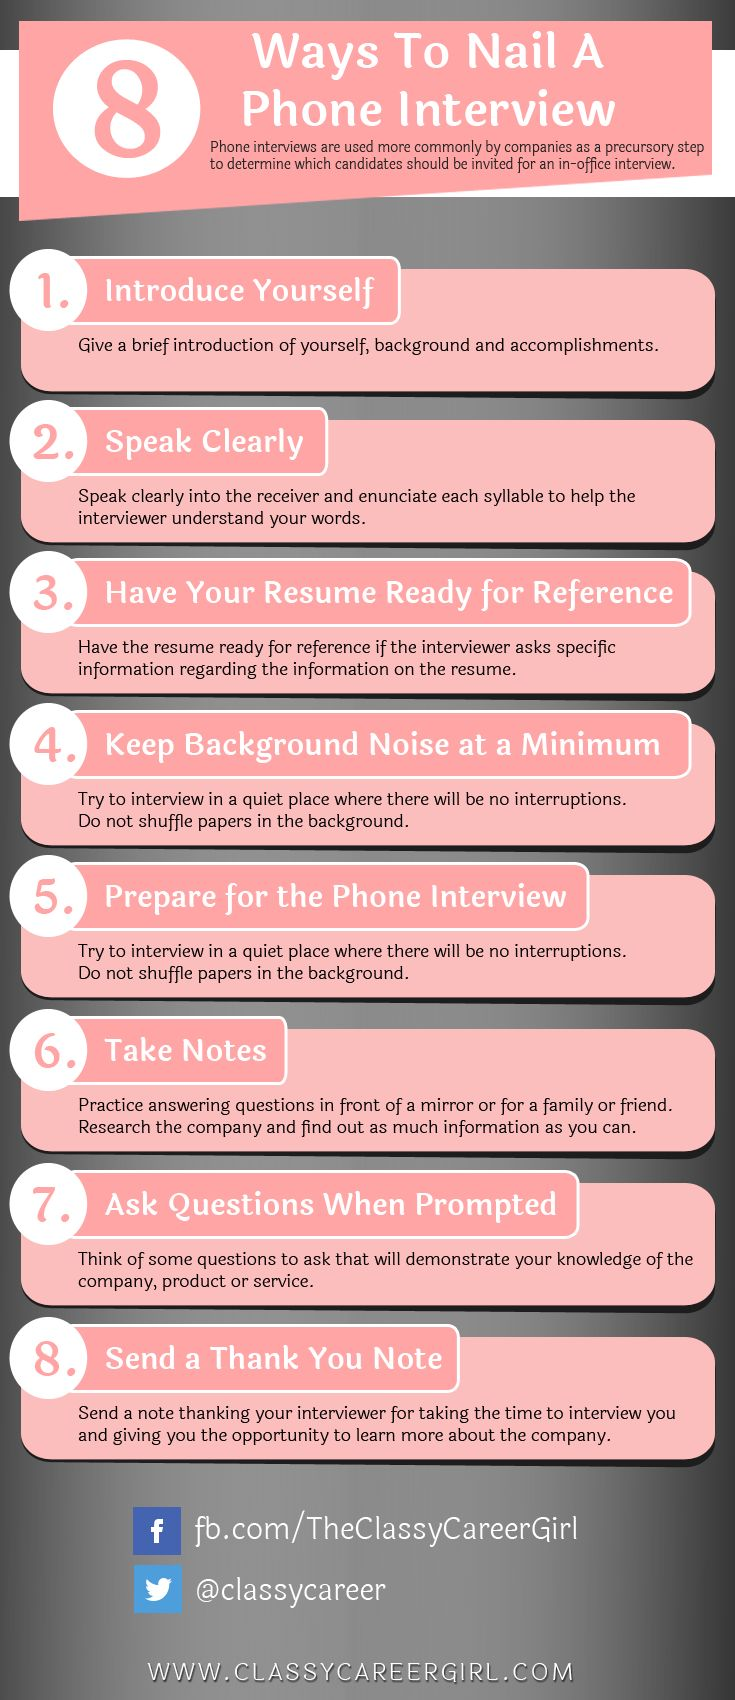 Career infographic : 8 Ways To Nail A Phone Interview - JobLoving ...